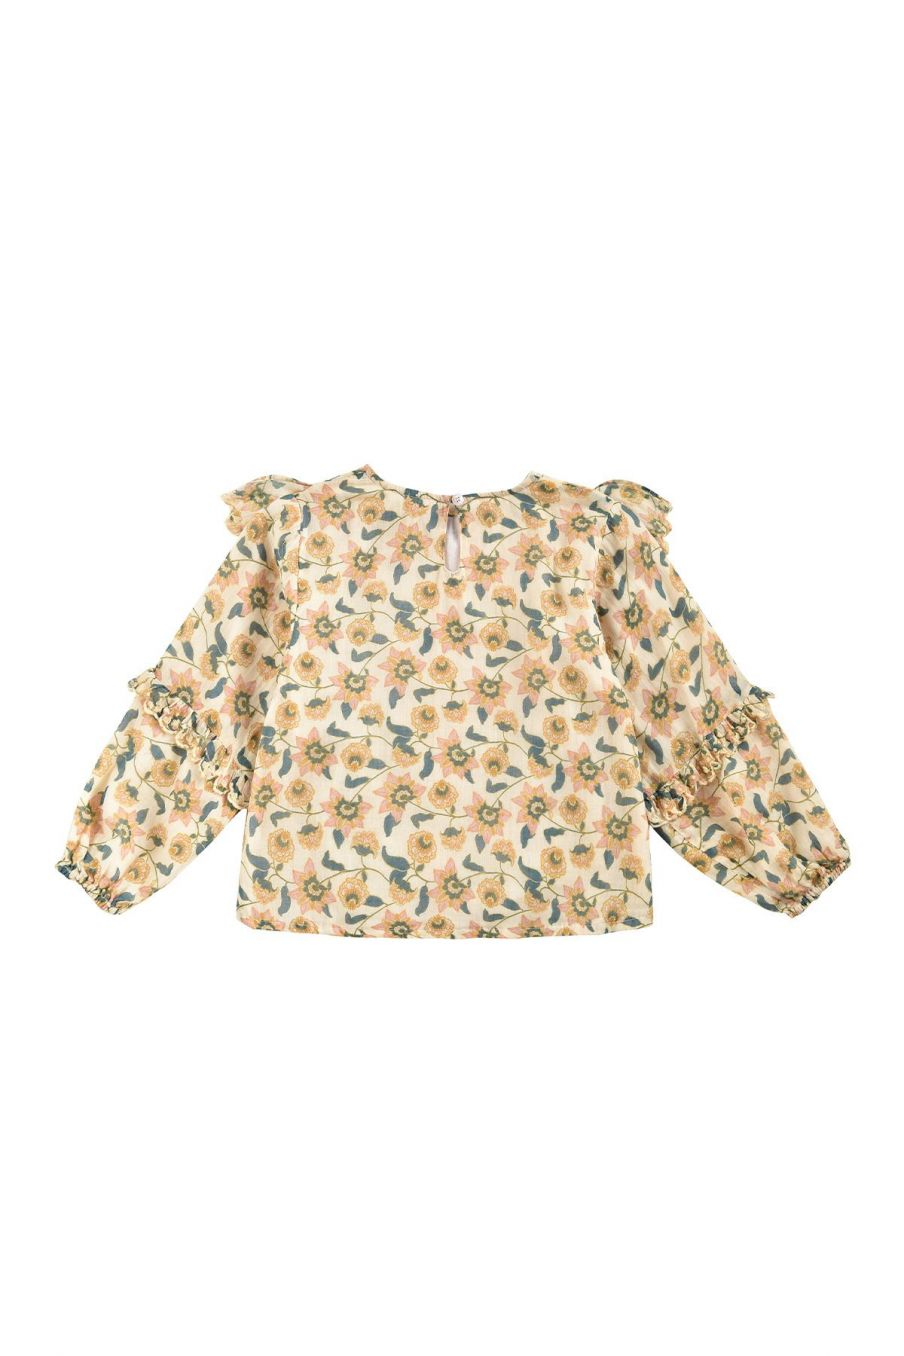 boheme chic vintage blouse fille tubi cream flowers